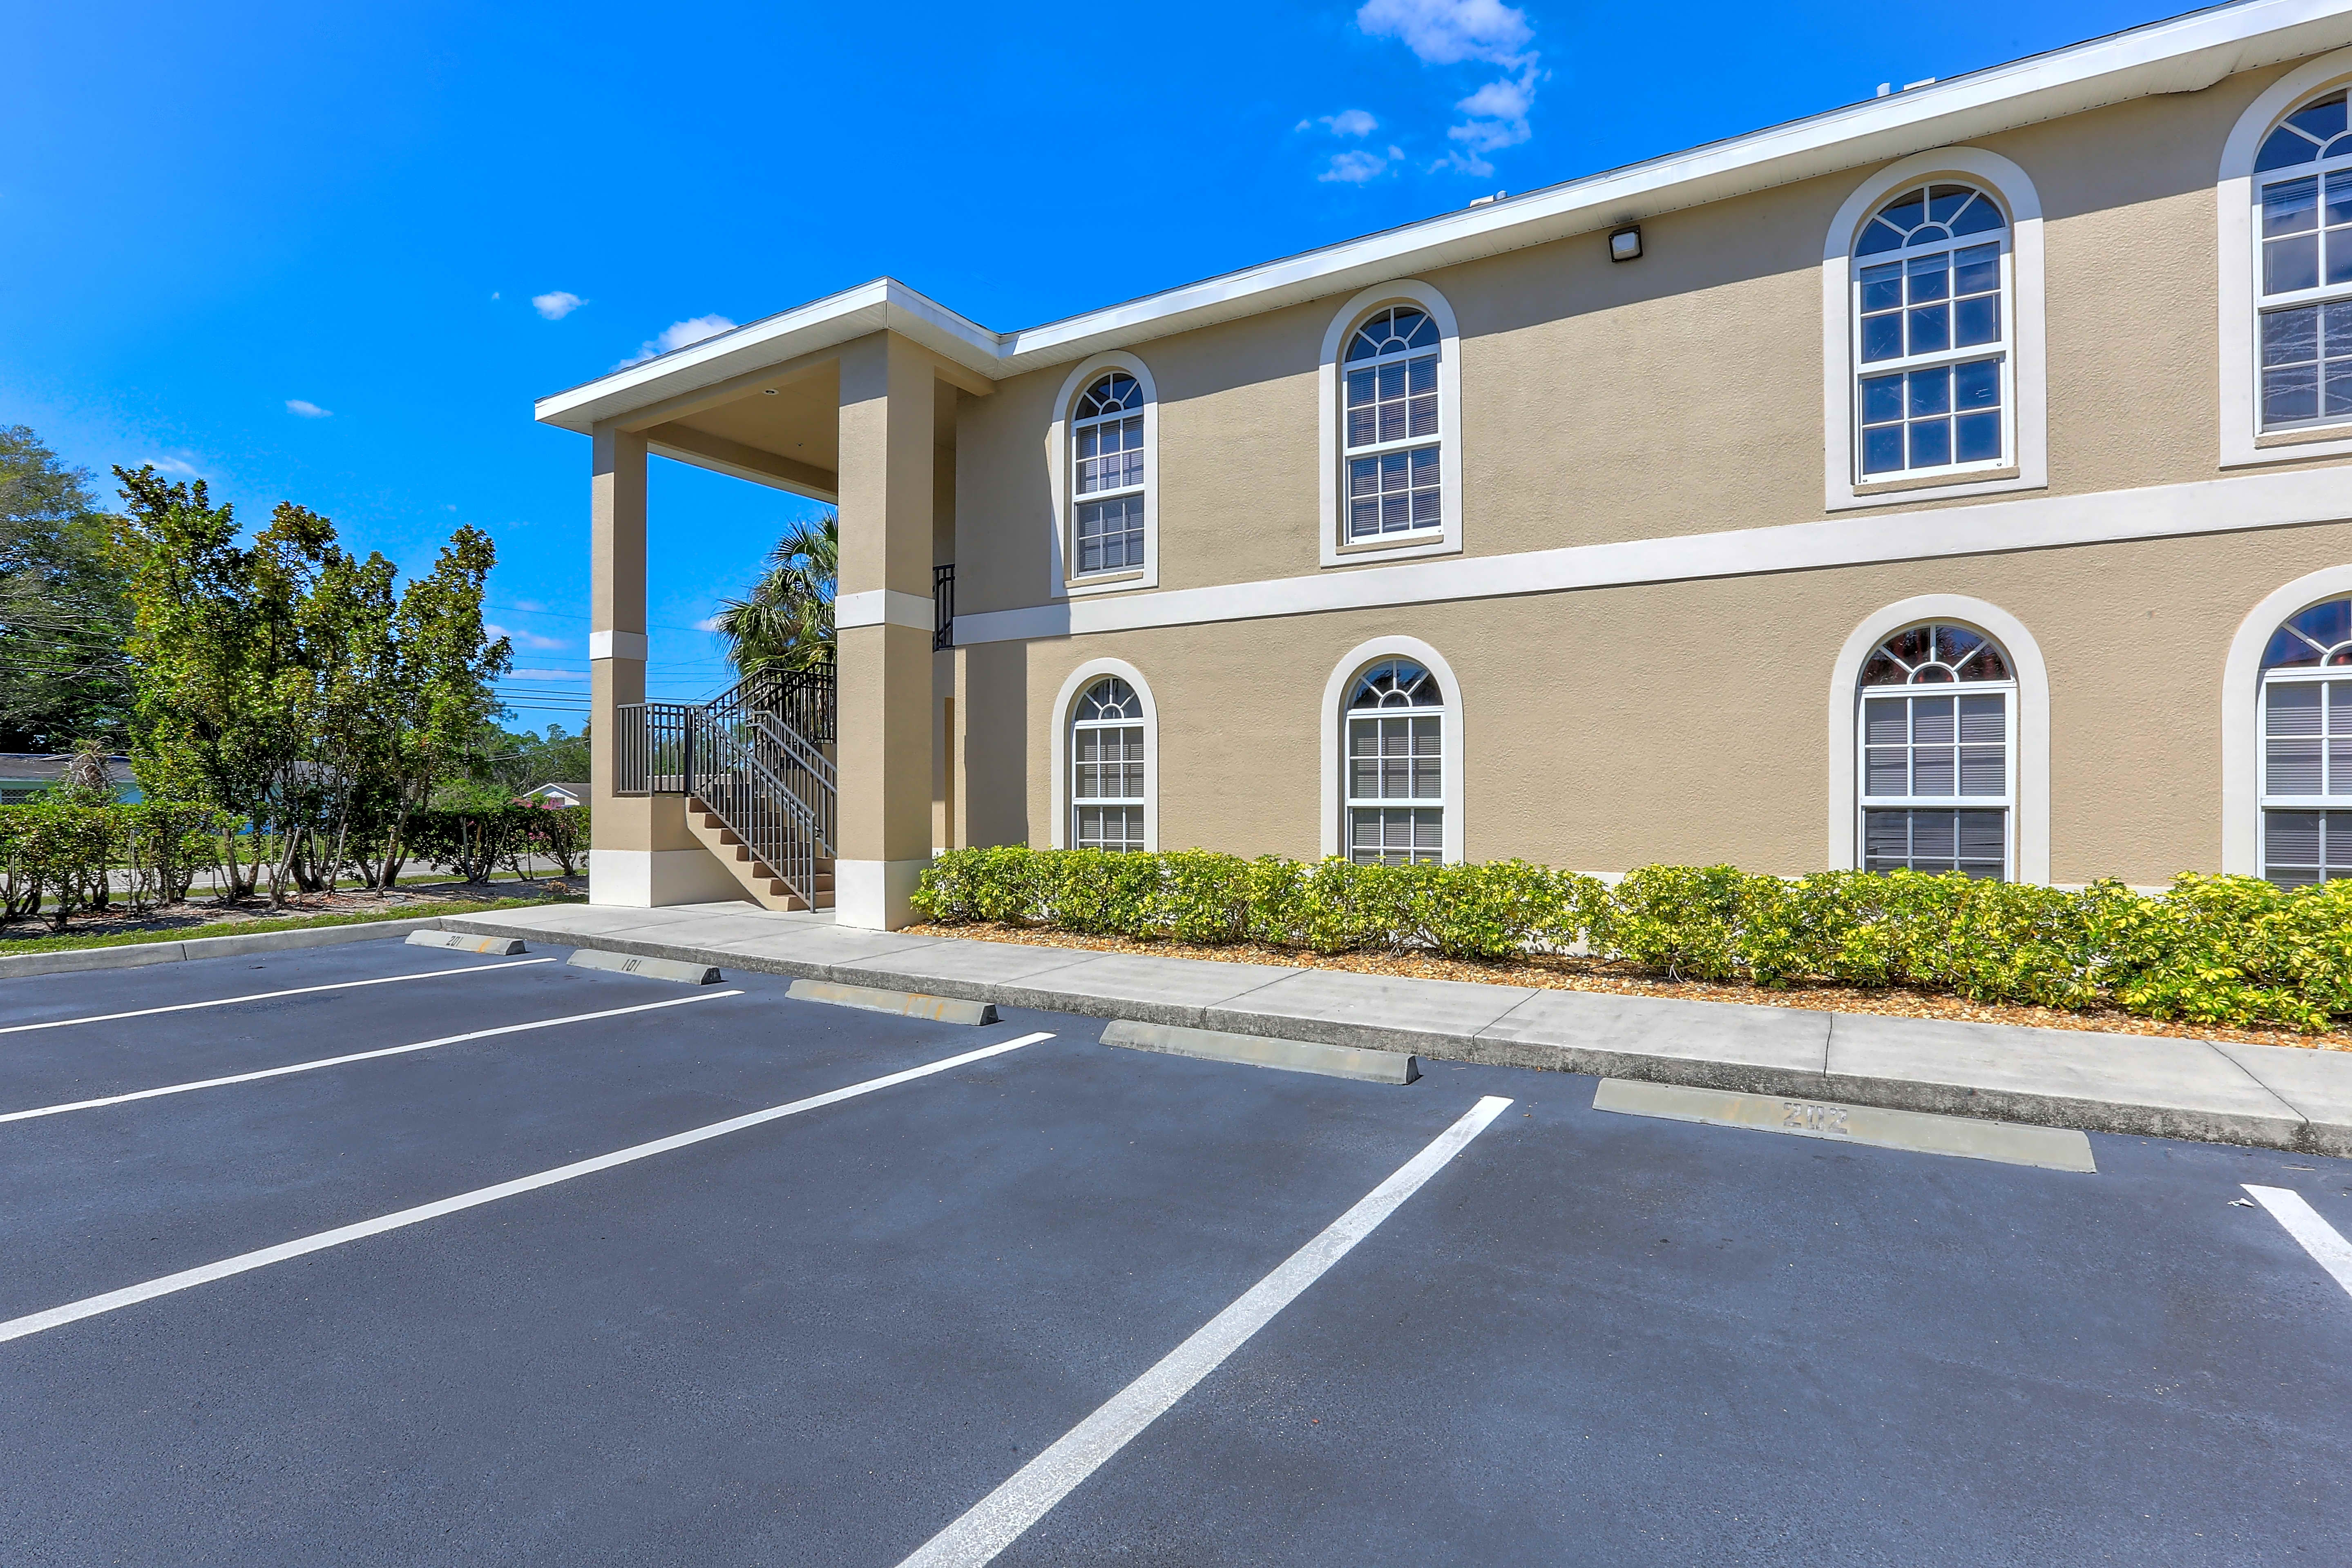 Apartments Near Florida Gulf Coast Residences Page Park for Florida Gulf Coast University Students in Fort Myers, FL